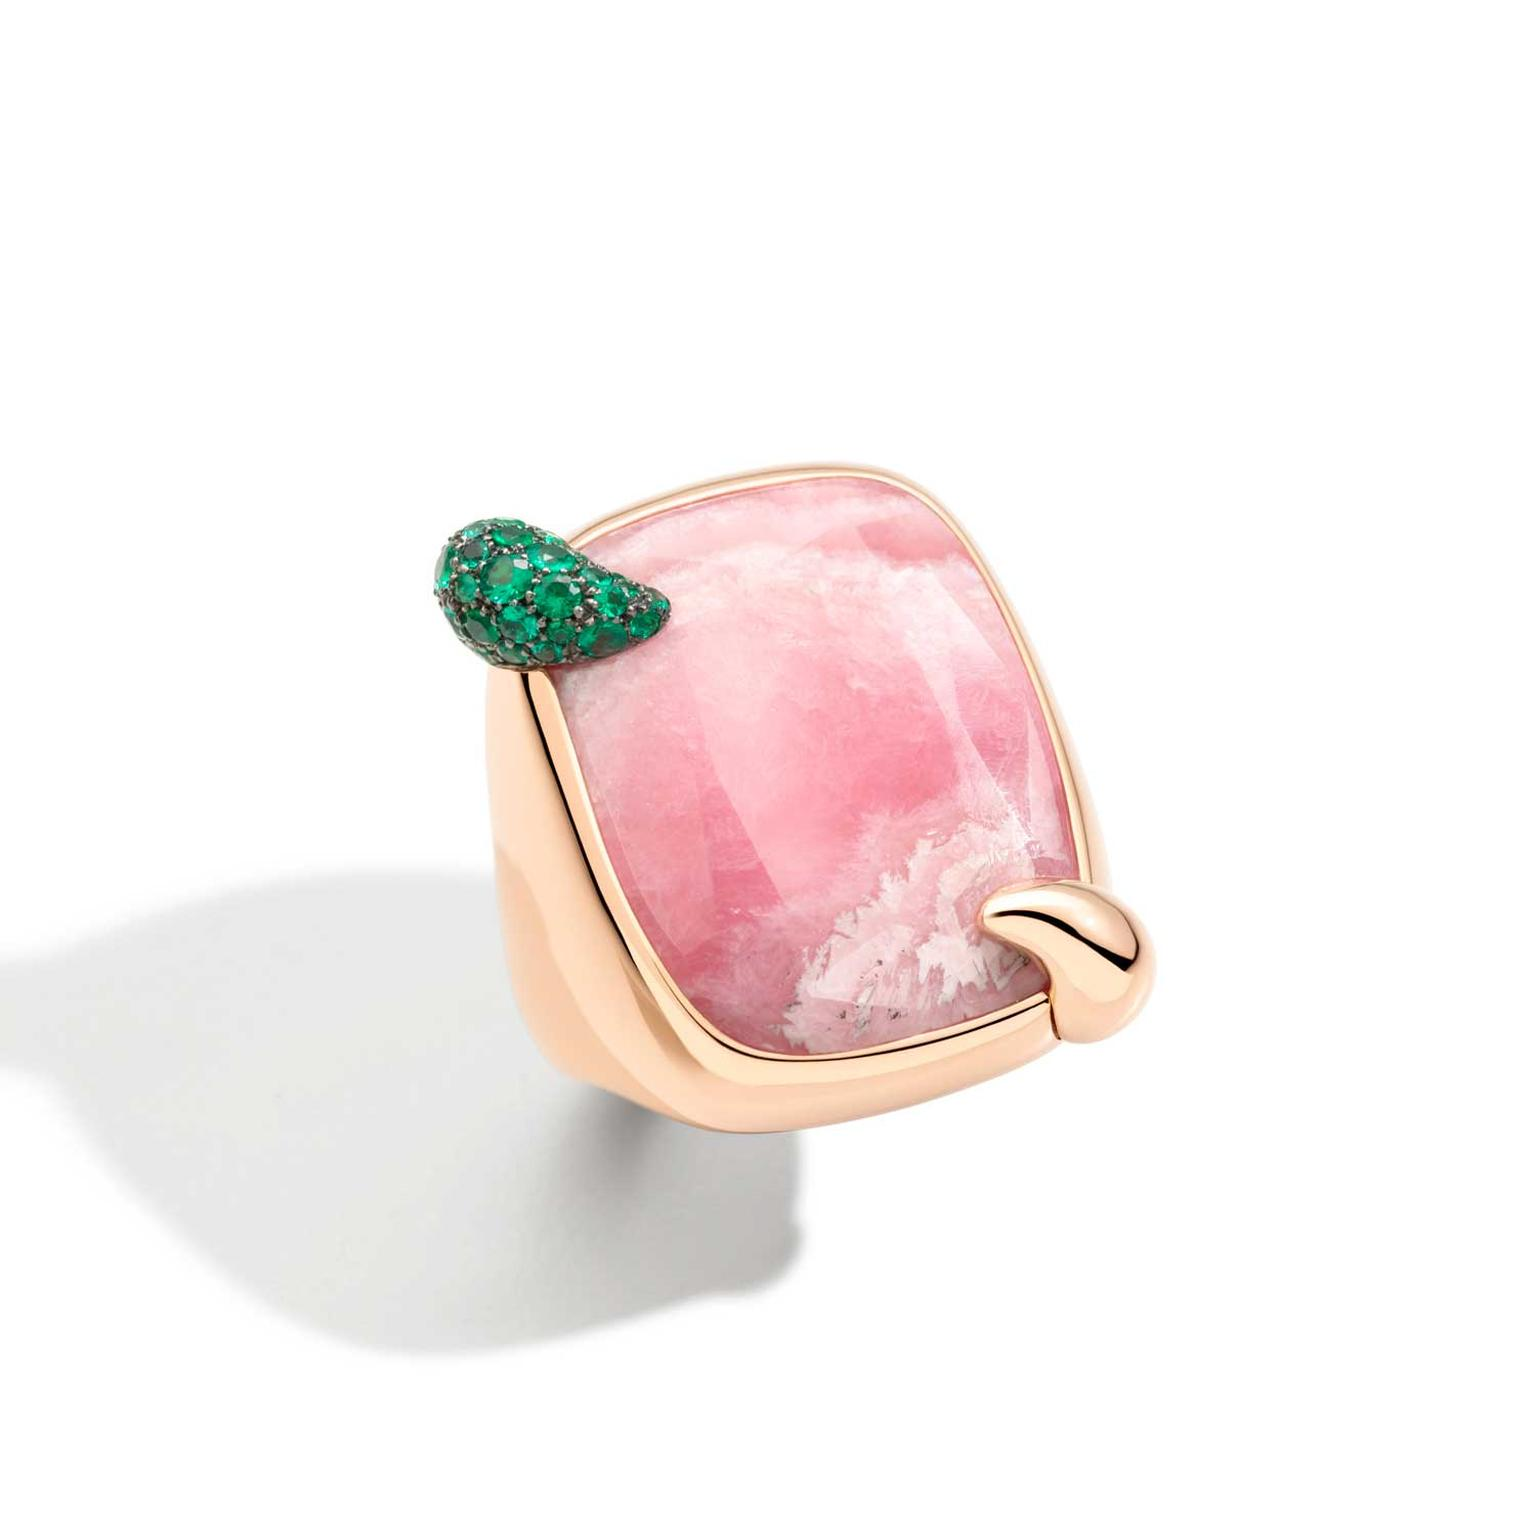 Discussion on this topic: MORE: 15 Big, Bold Cocktail Rings To , more-15-big-bold-cocktail-rings-to/